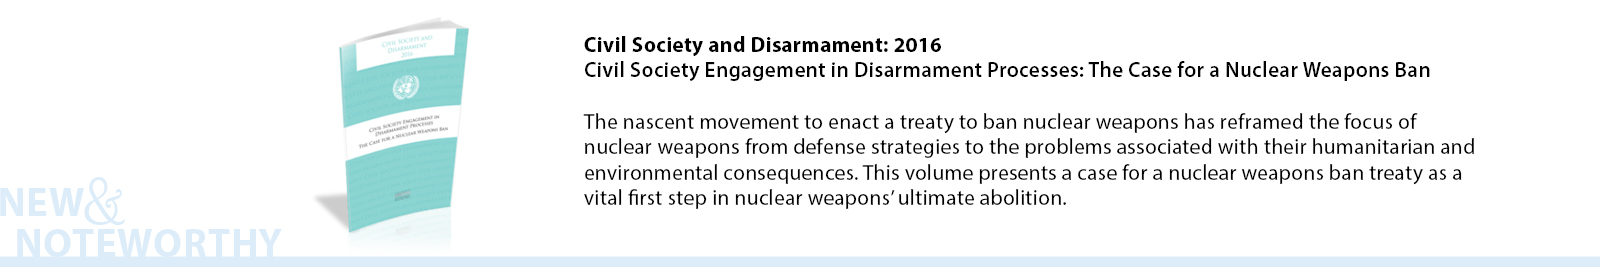 The nascent movement to enact a treaty to ban nuclear weapons has reframed the focus of nuclear weapons from defense strategies to the problems associated with their humanitarian and environmental consequences. This volume of Civil Society Engagement in Disarmament Processes presents a case for a nuclear weapons ban treaty as a vital first step in nuclear weapons' ultimate abolition.